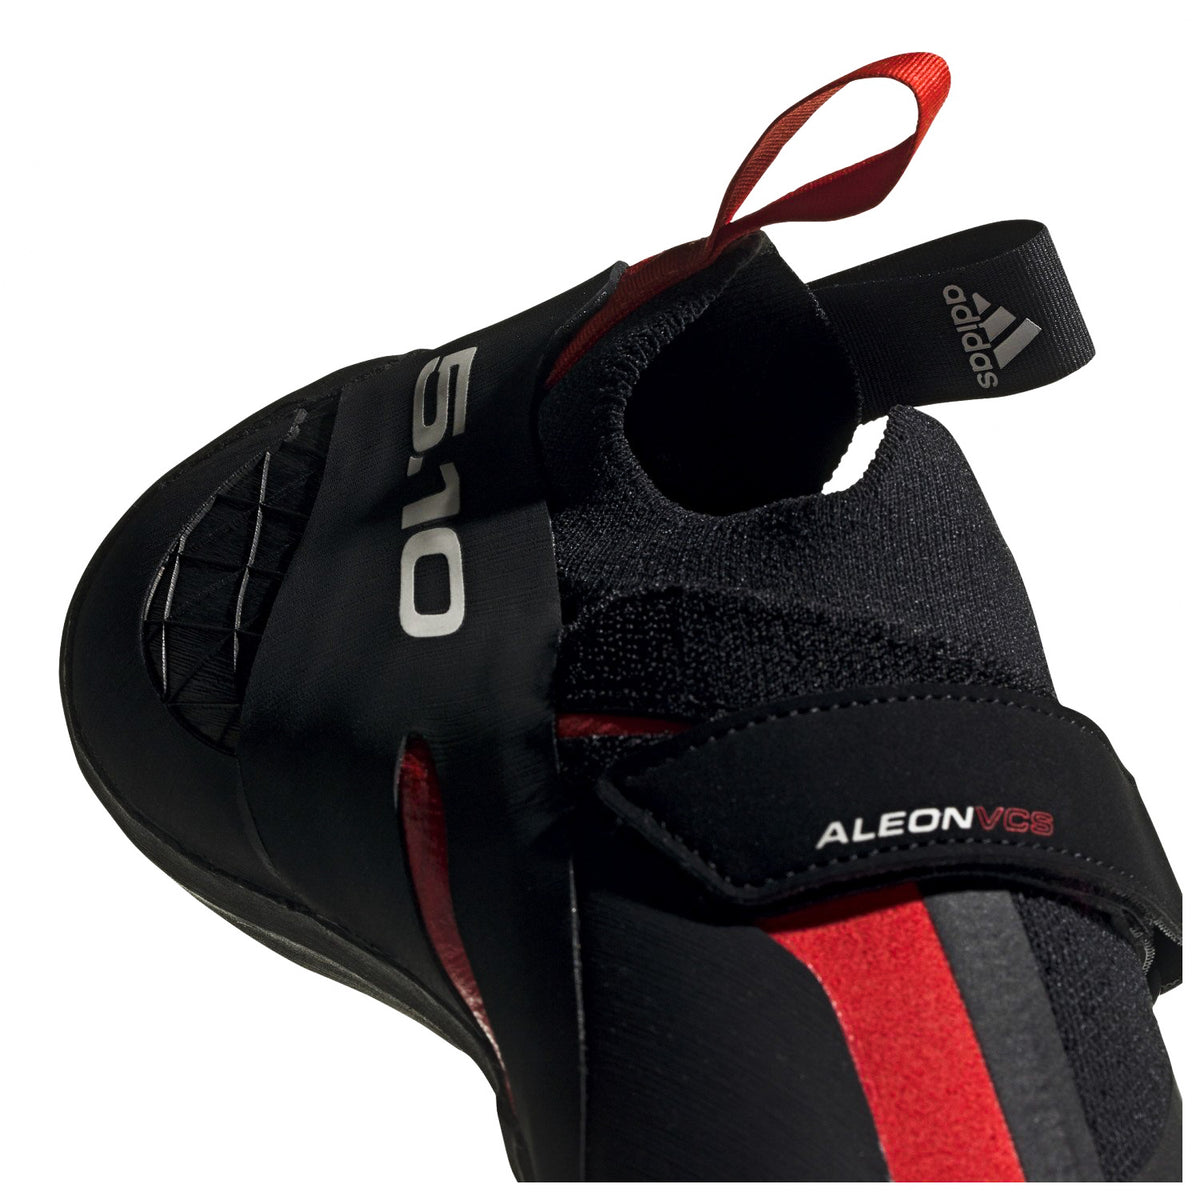 Five Ten Aleon climbing shoe, close up of the strap and entry point